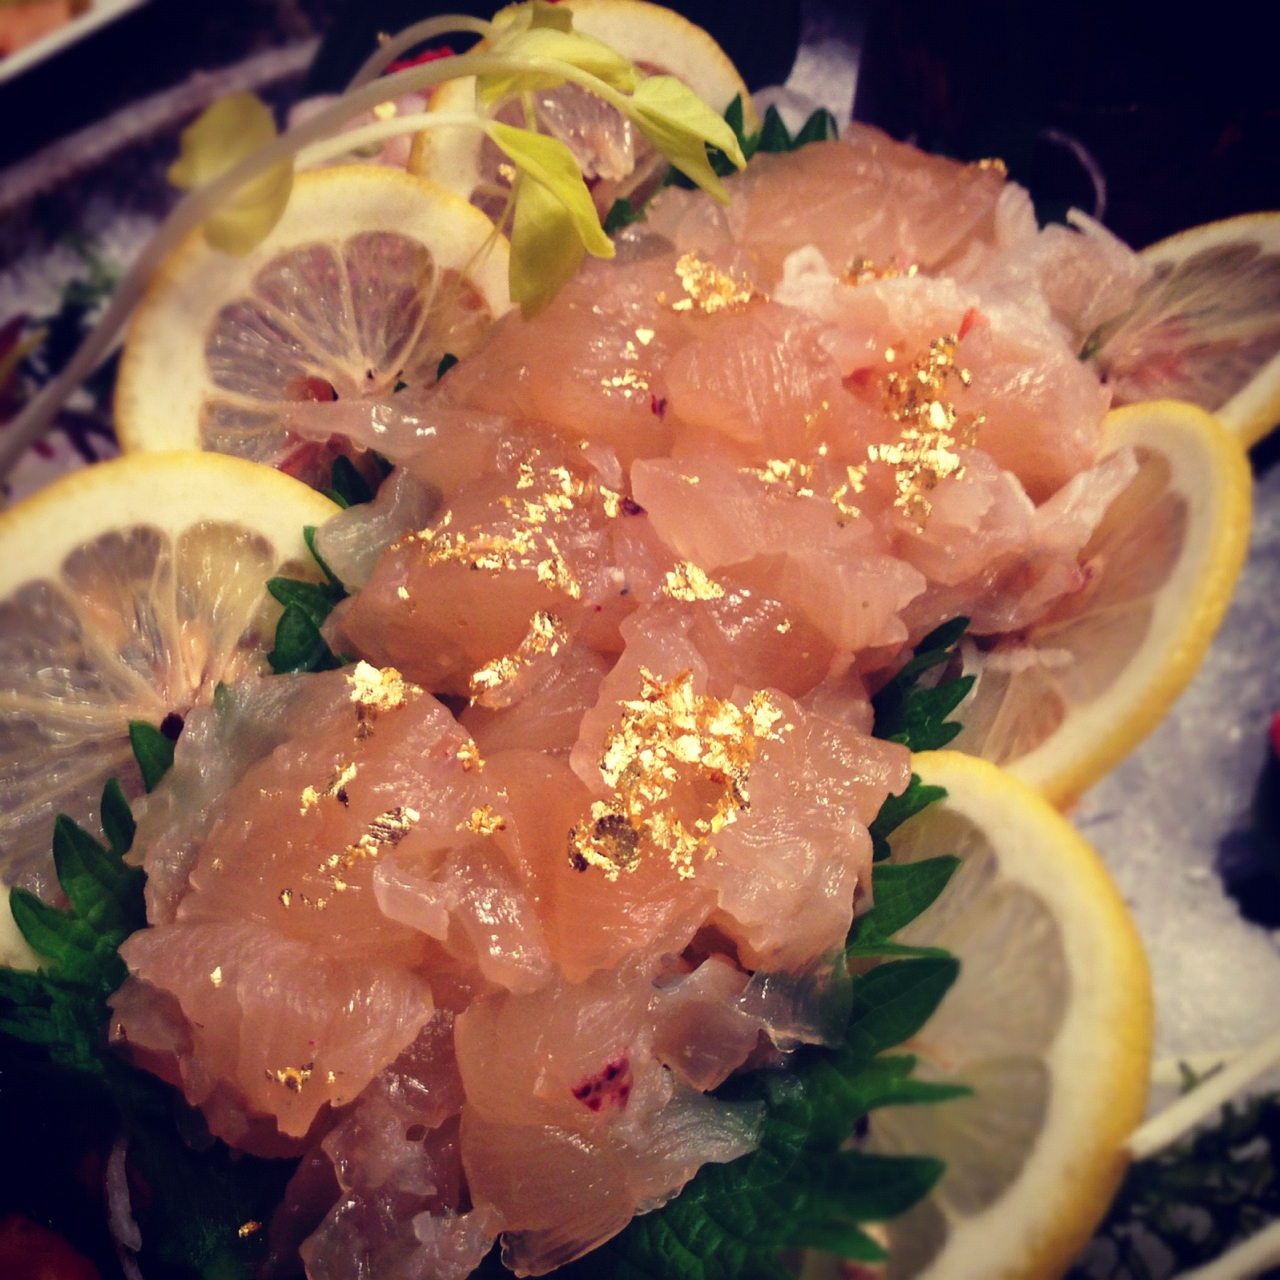 Lobster sashimi with gold flakes